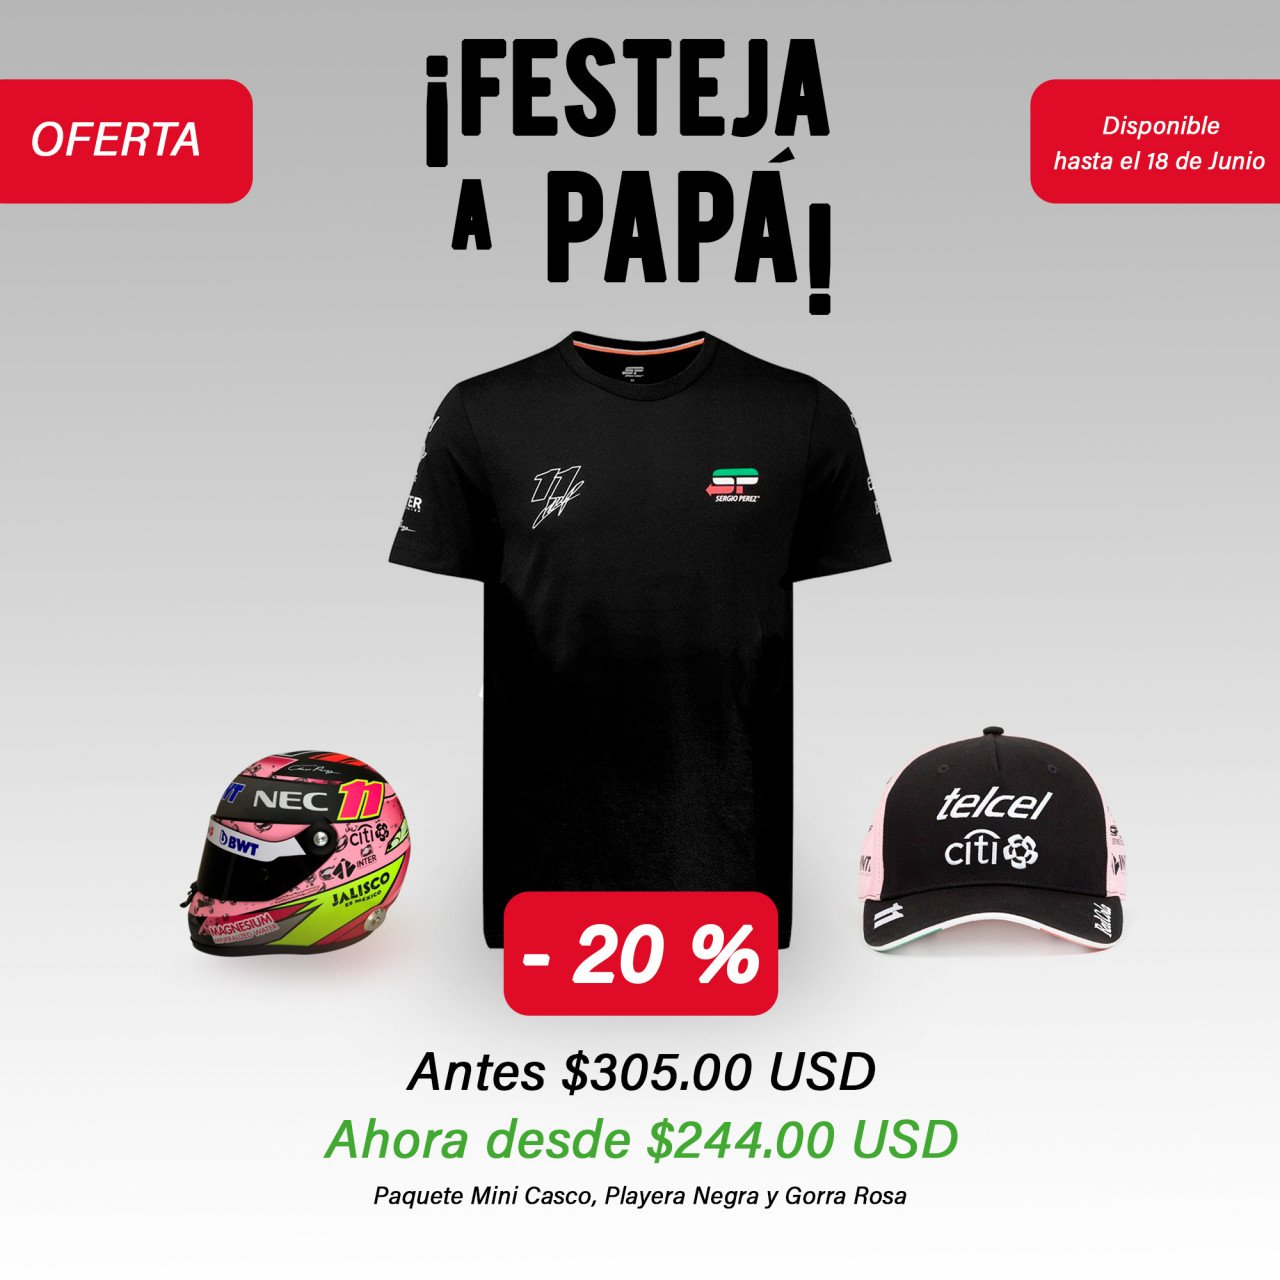 KIT Mini-Casco, Playera Negra y Gorra Rosa